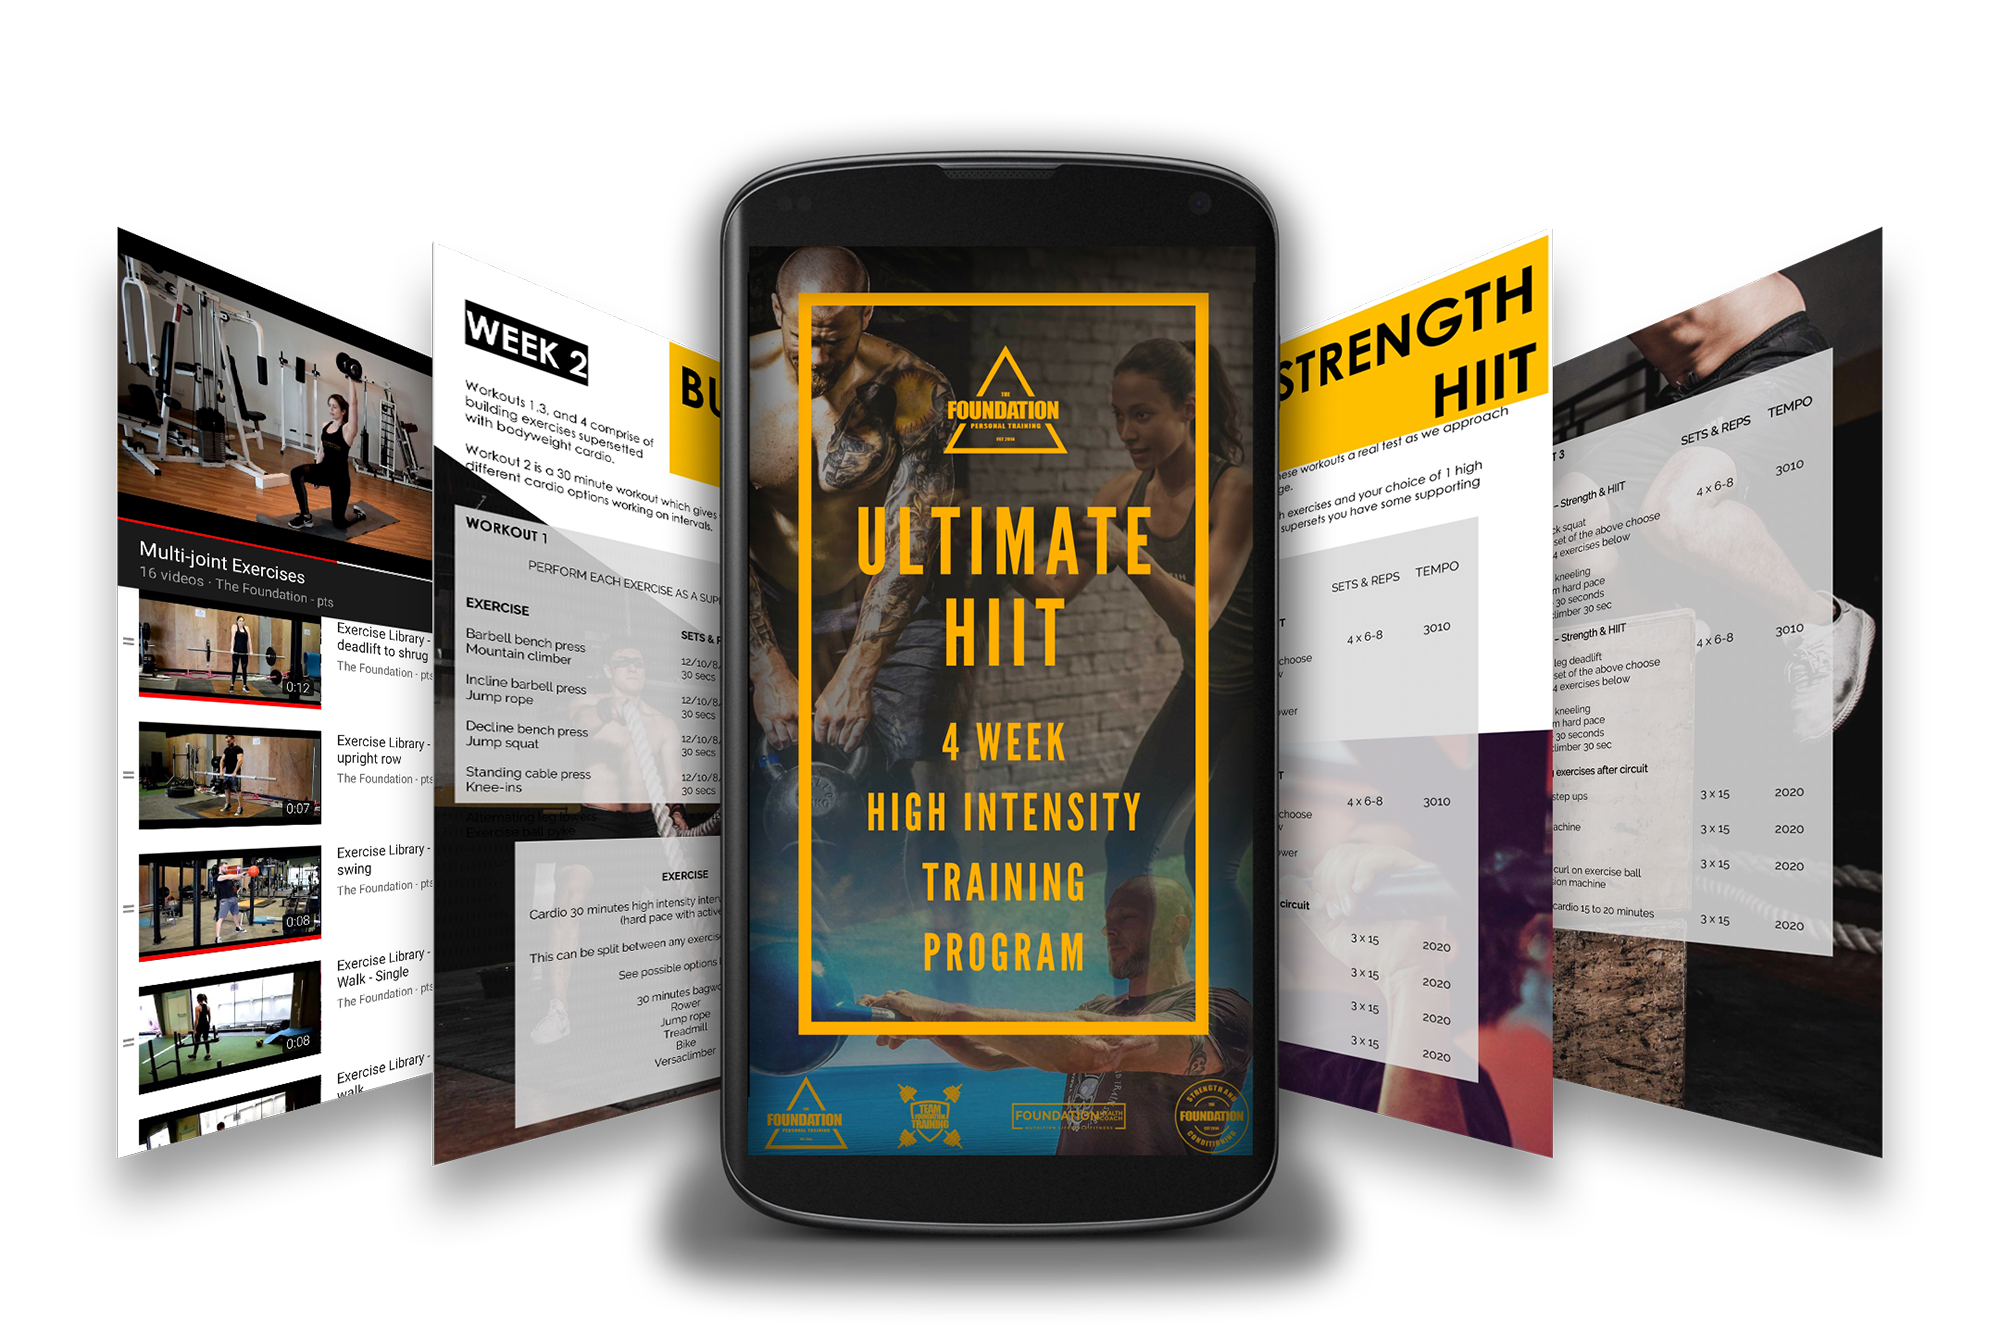 WEBSITE DIGITAL PRODUCT PROMO PIC ultimate hiit small.png